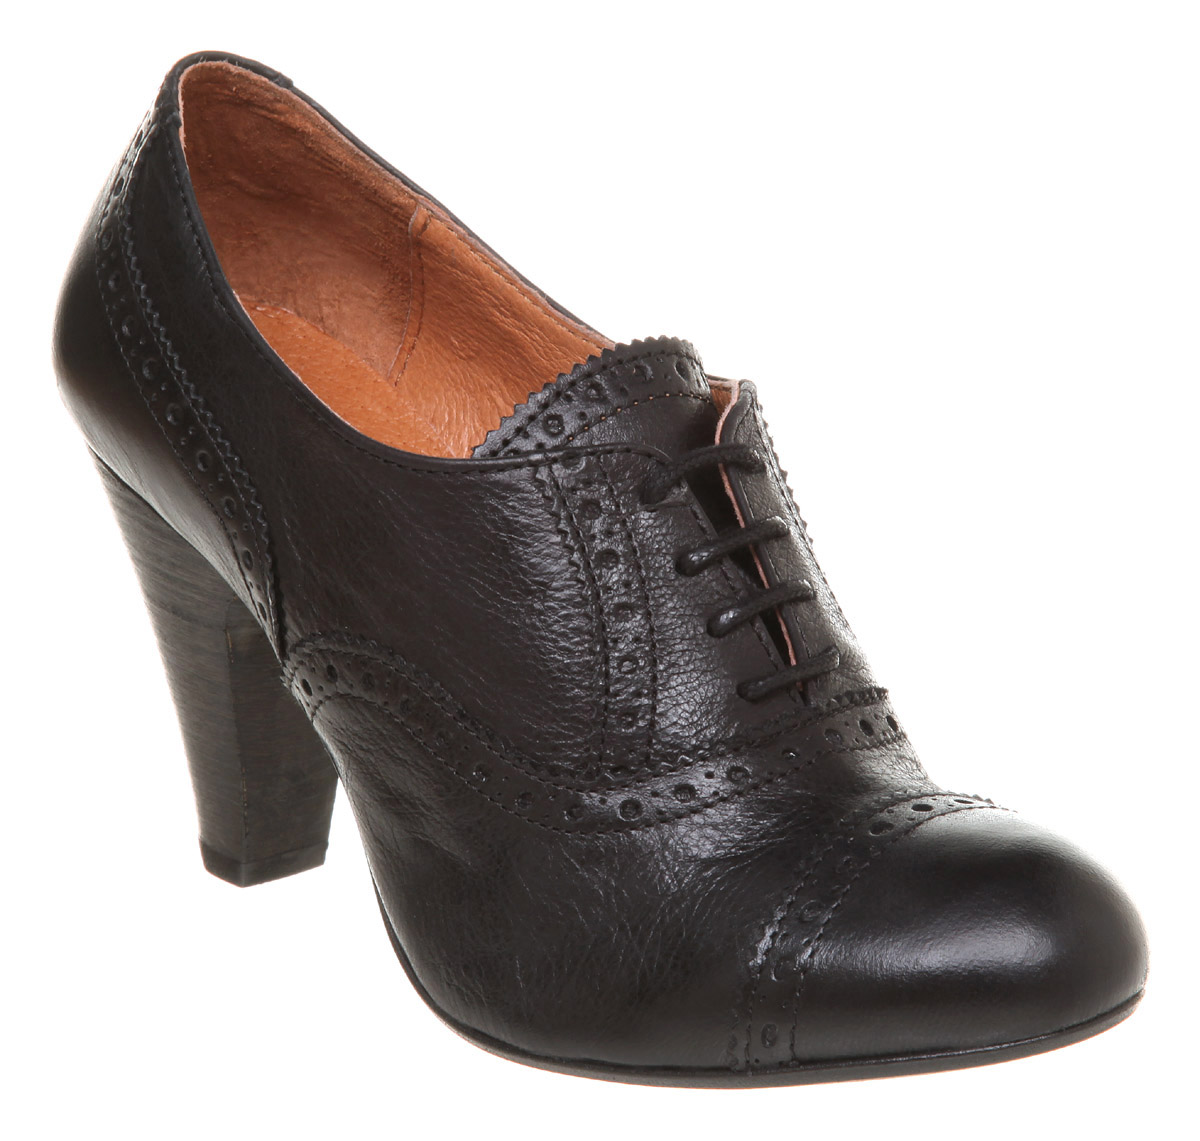 Womens Black Suede Tie Shoes